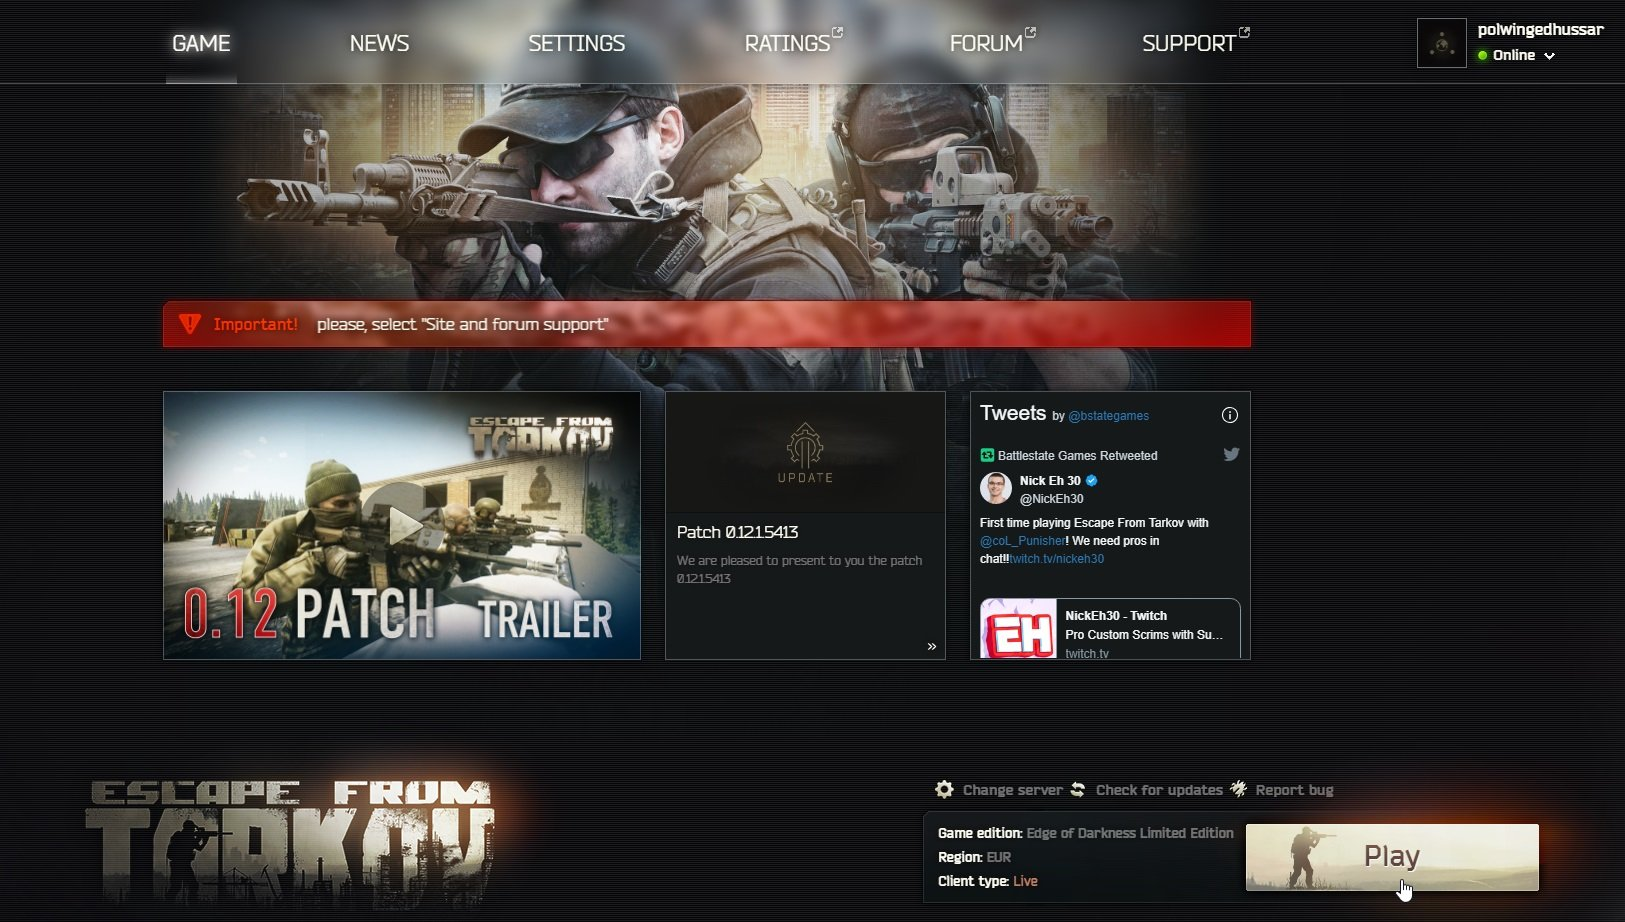 When you have the Battlestate Games launcher installed, you will be able to play Escape From Tarkov.